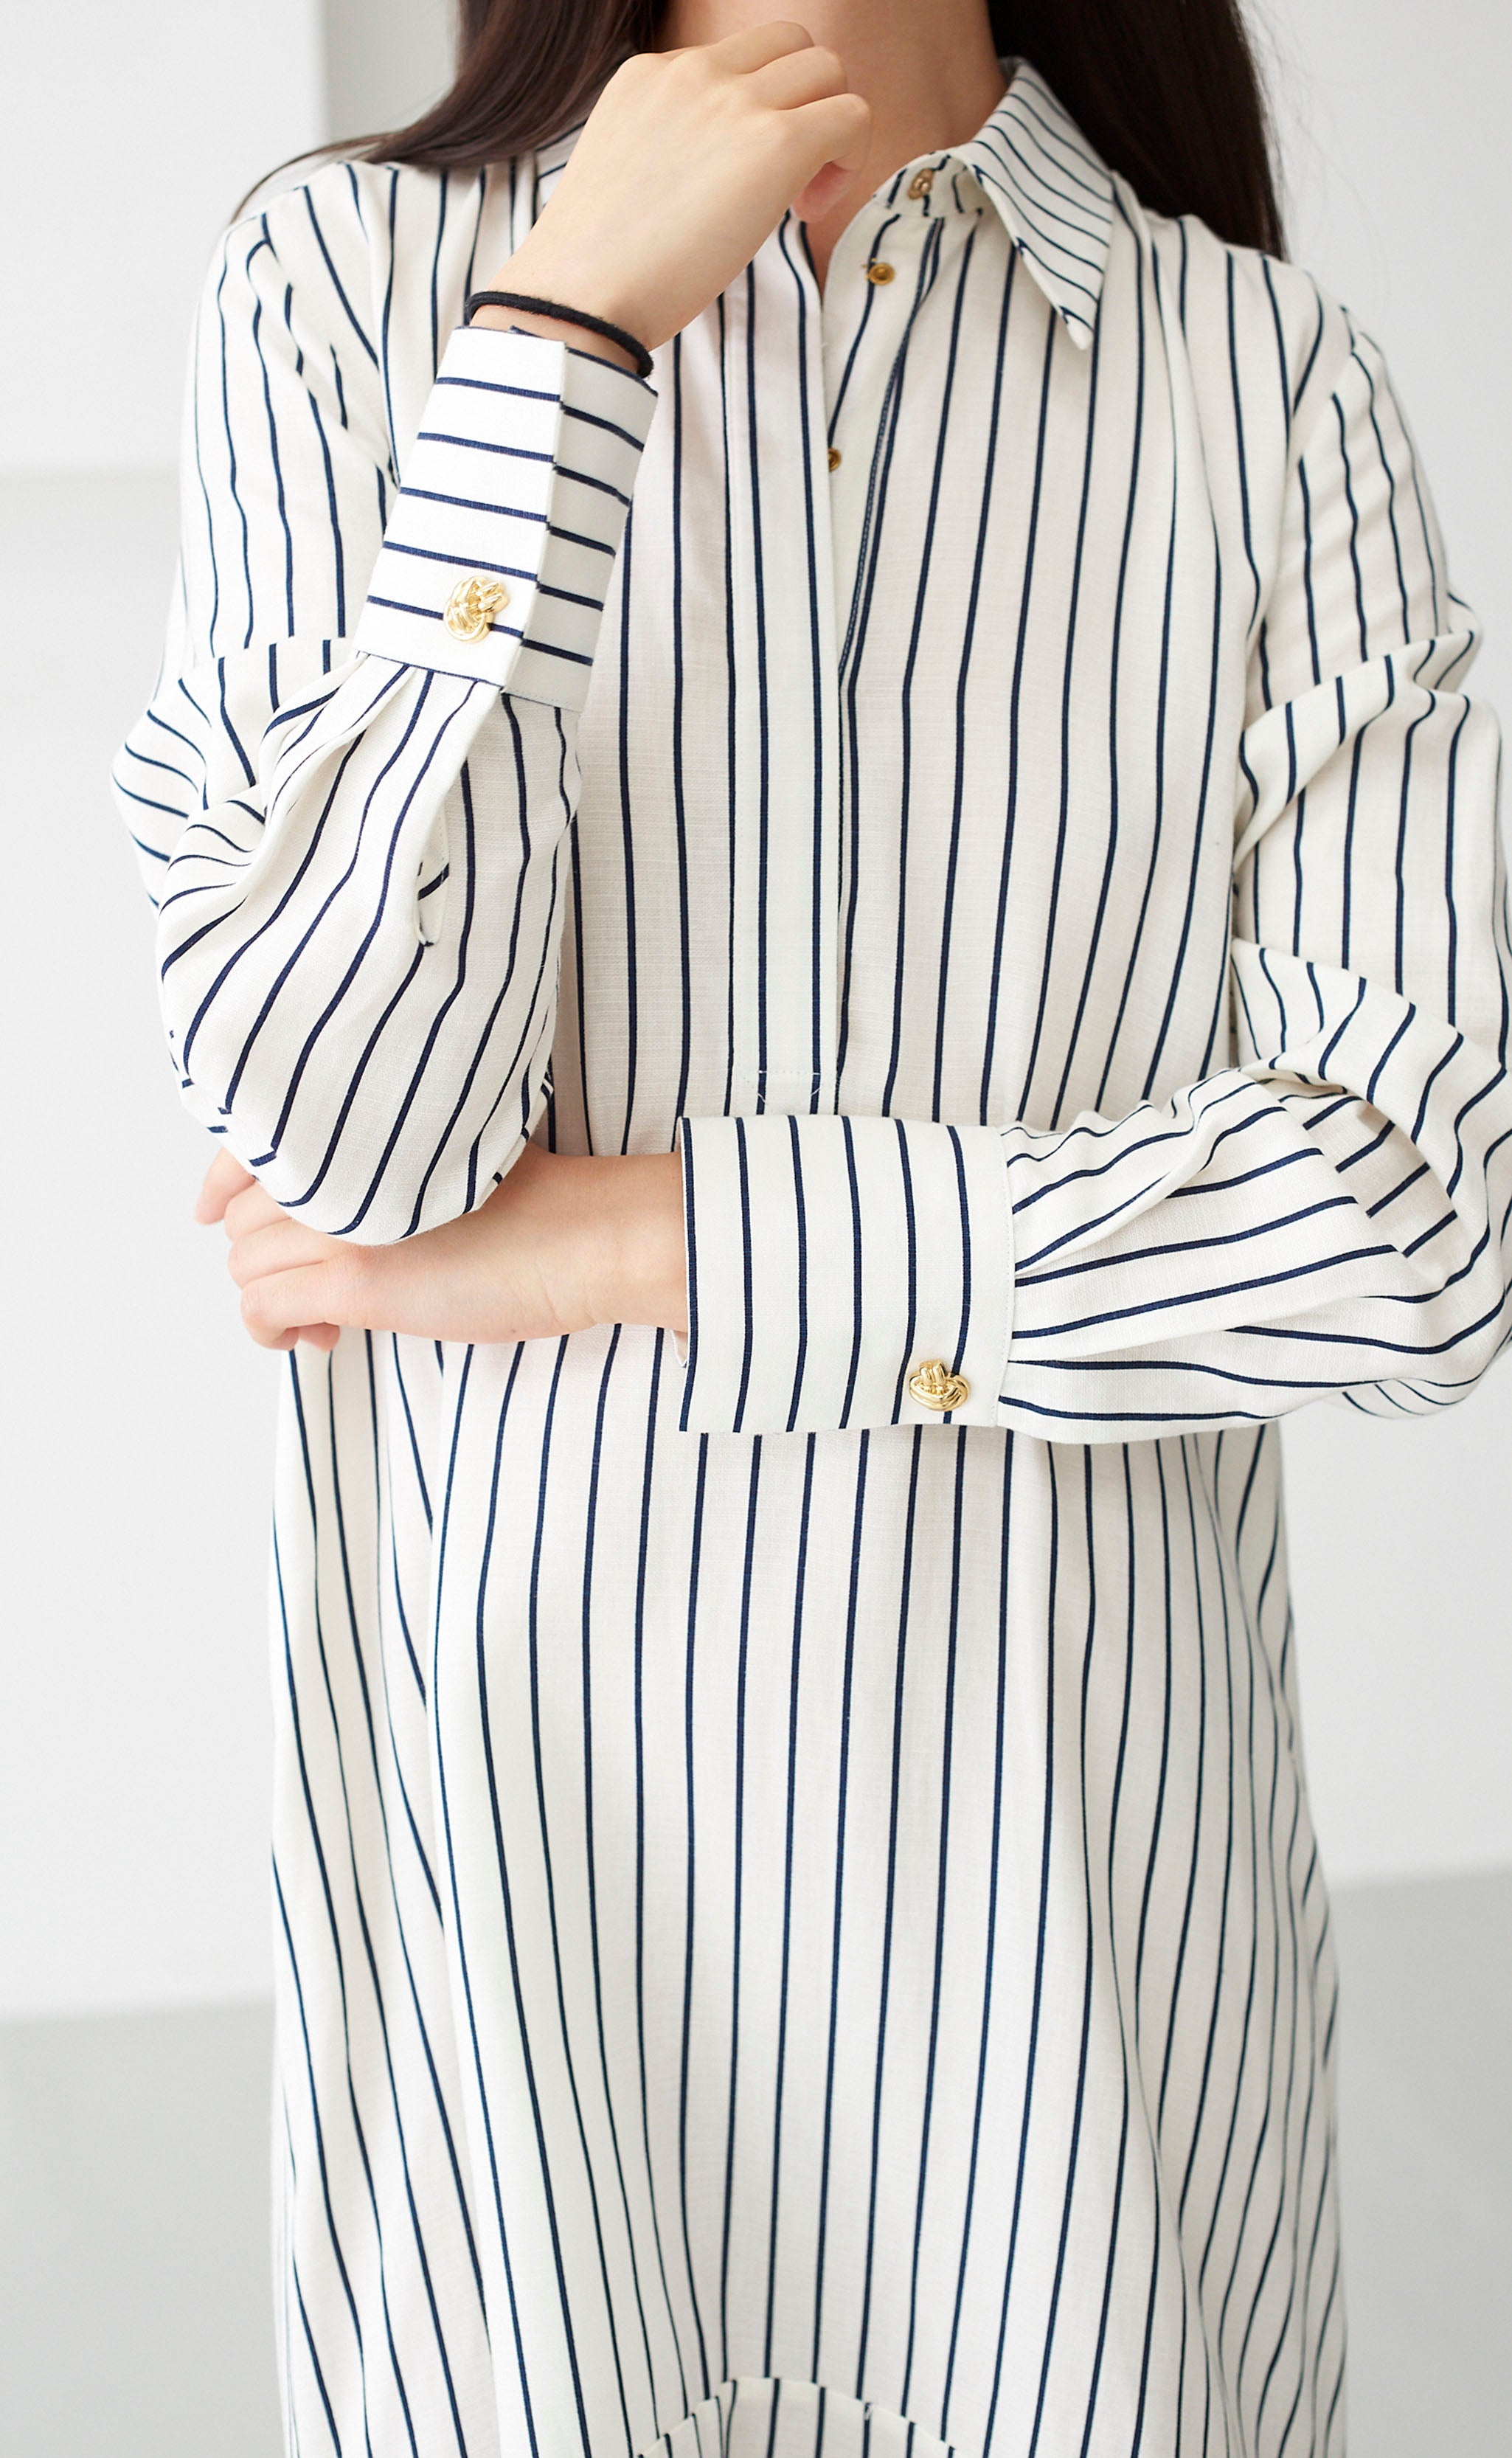 WHITNEY STRIPE DRESS